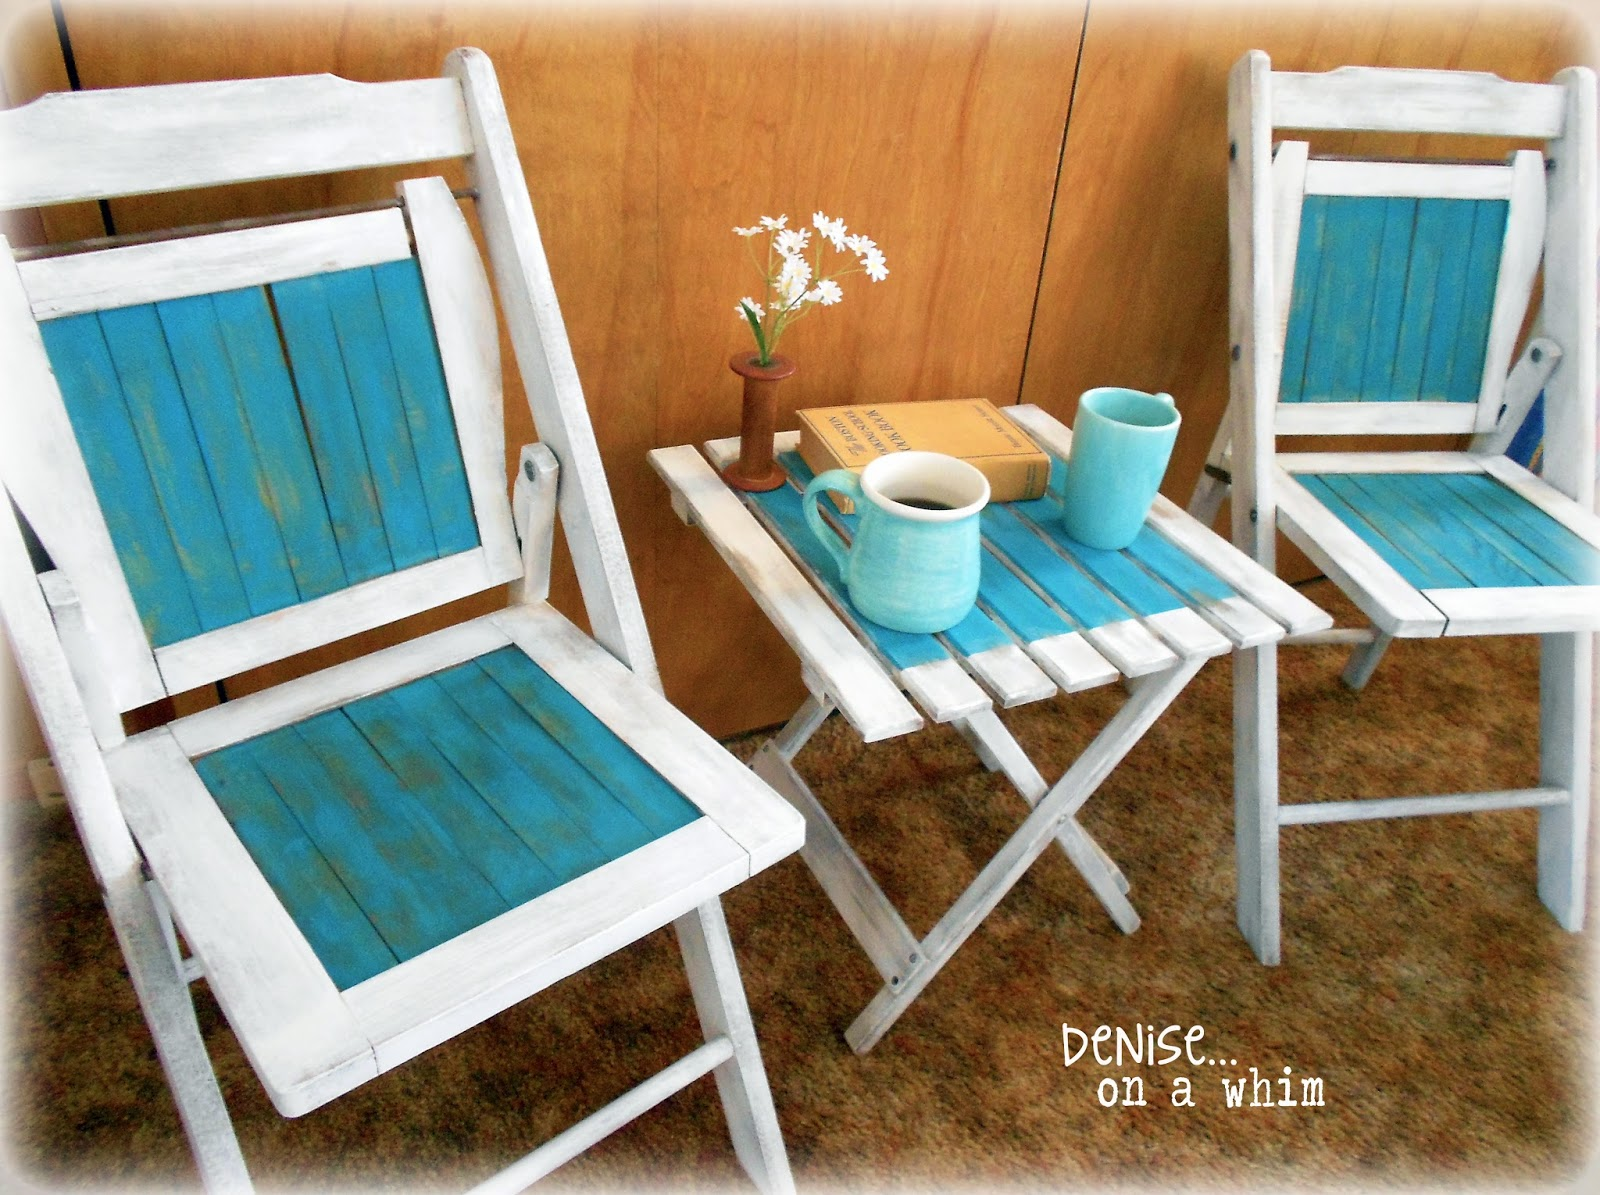 Lovely set of vintage wooden folding chairs and slotted table via http://deniseonawhim.blogspot.com